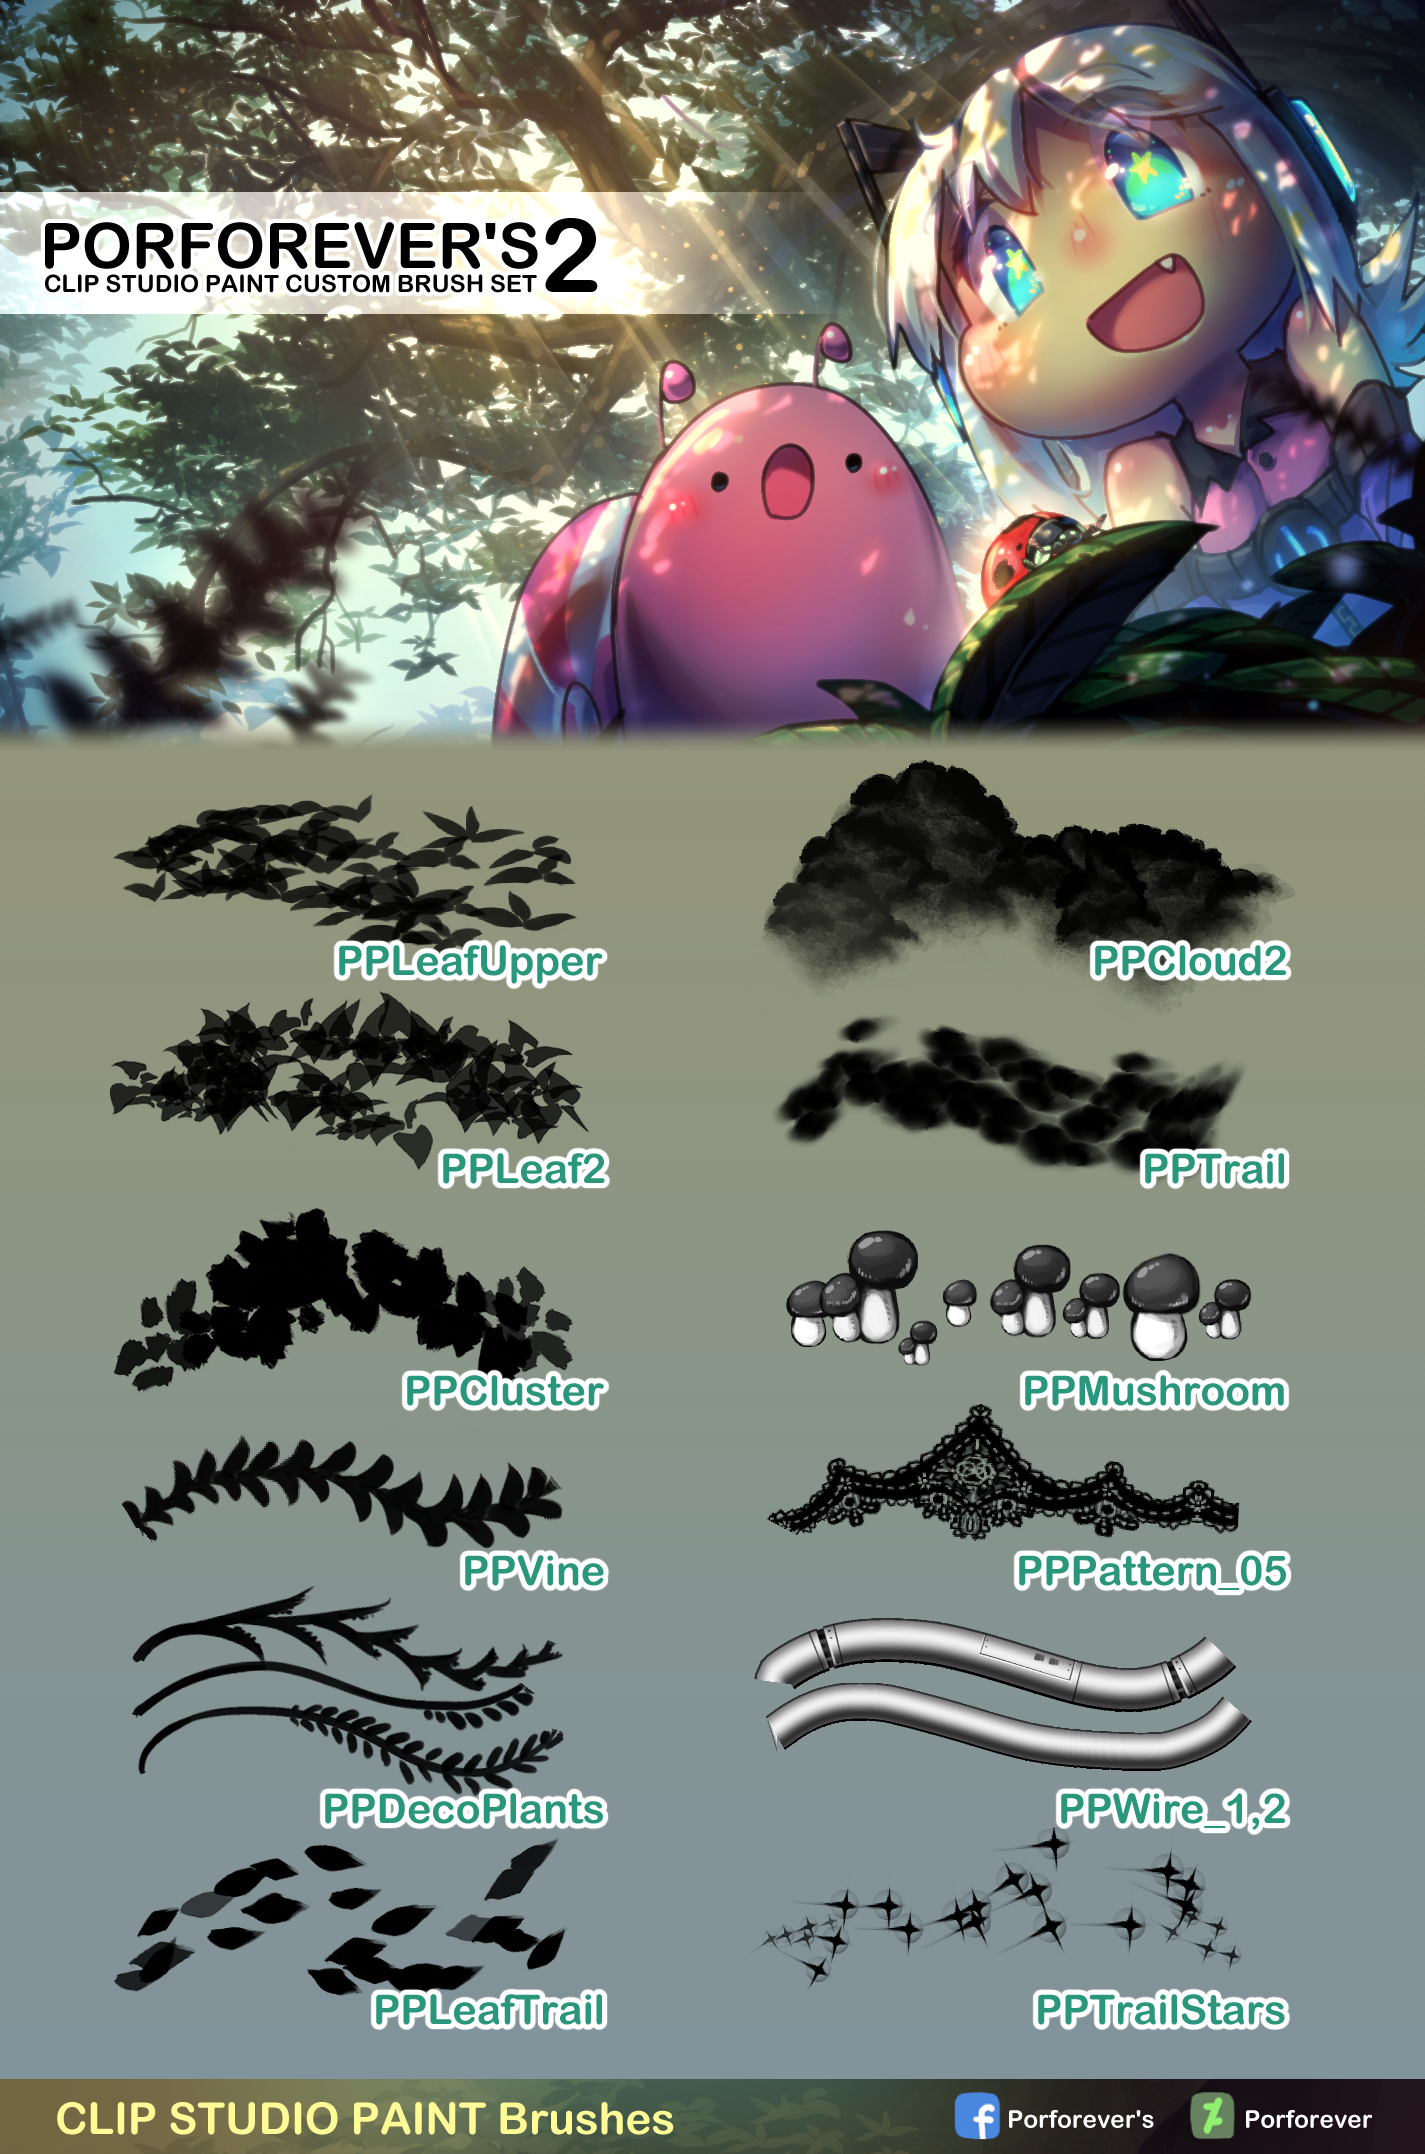 Porforever's Custom Brush Set 2 by Porforever